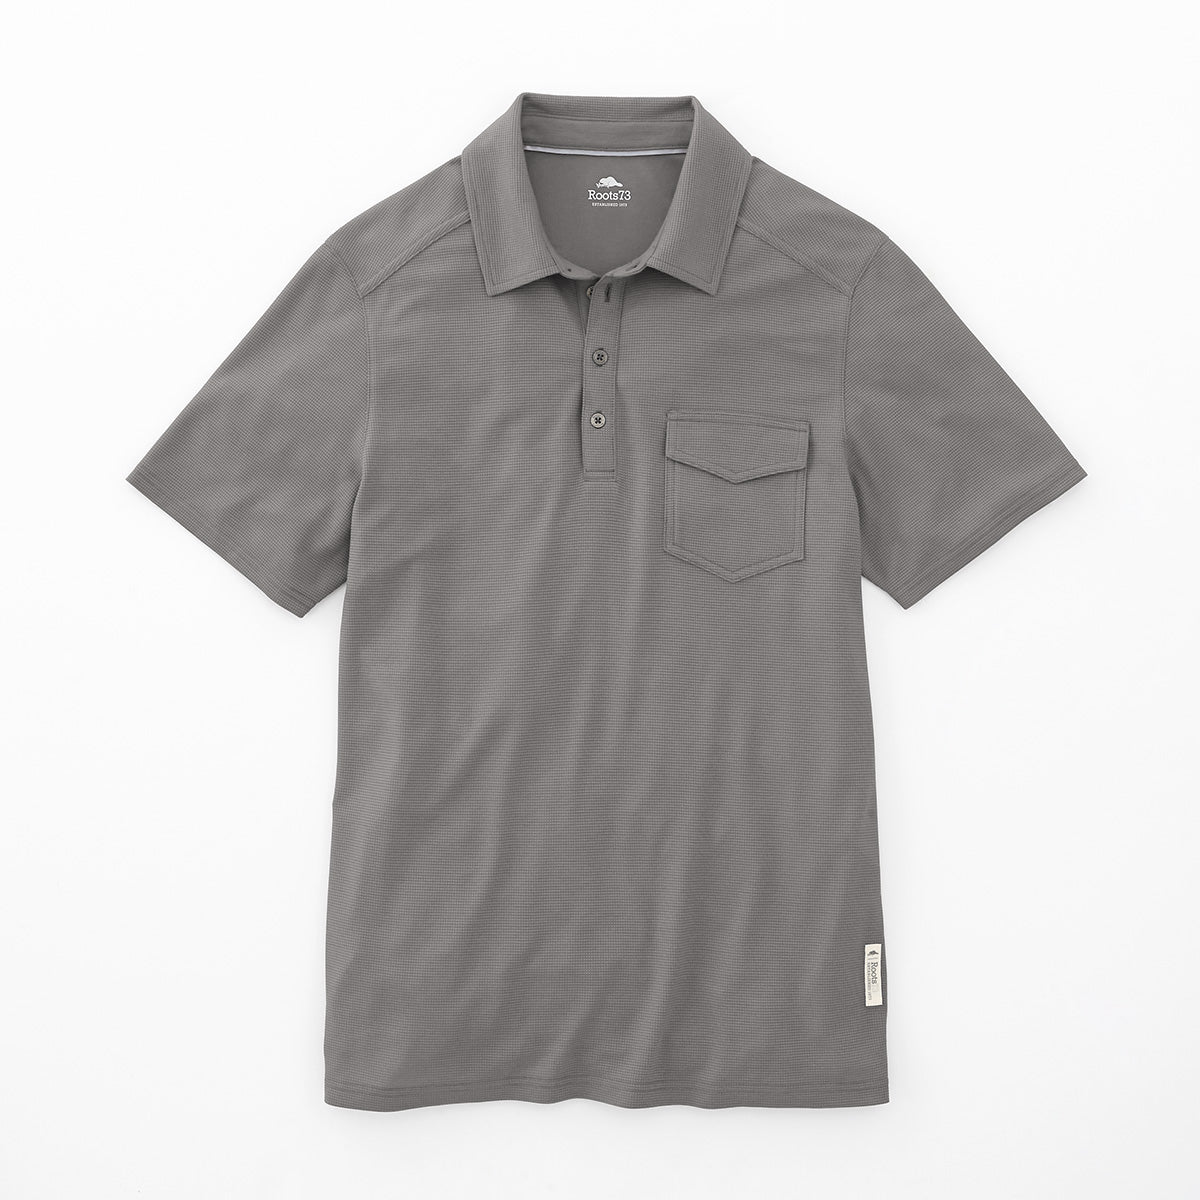 ROOTS73 MEN'S LUNENBURG SHORT SLEEVE POLO